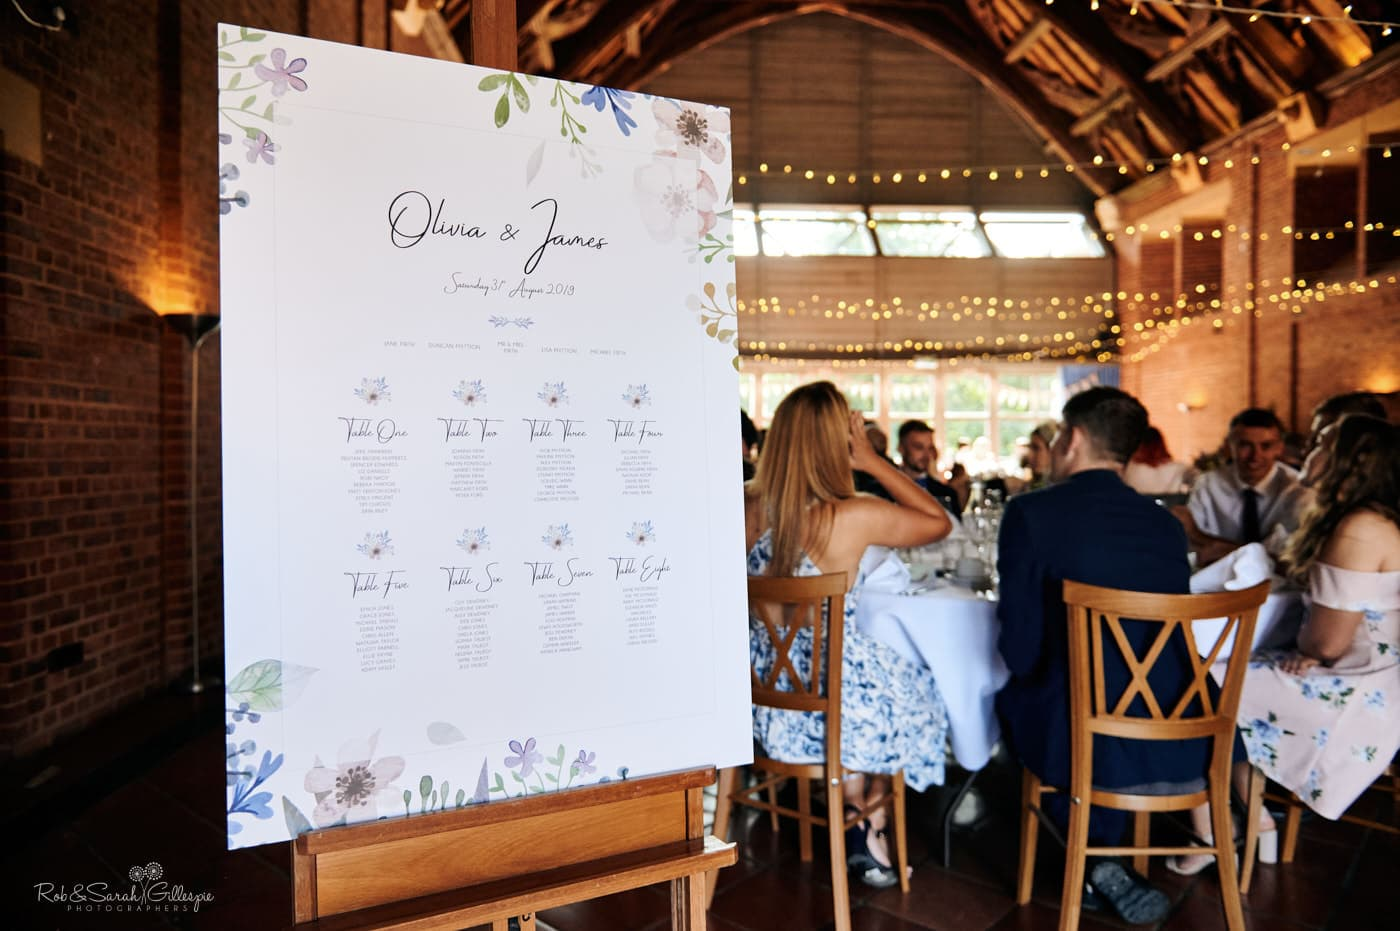 Wedding table plan with guests seated ready for meal